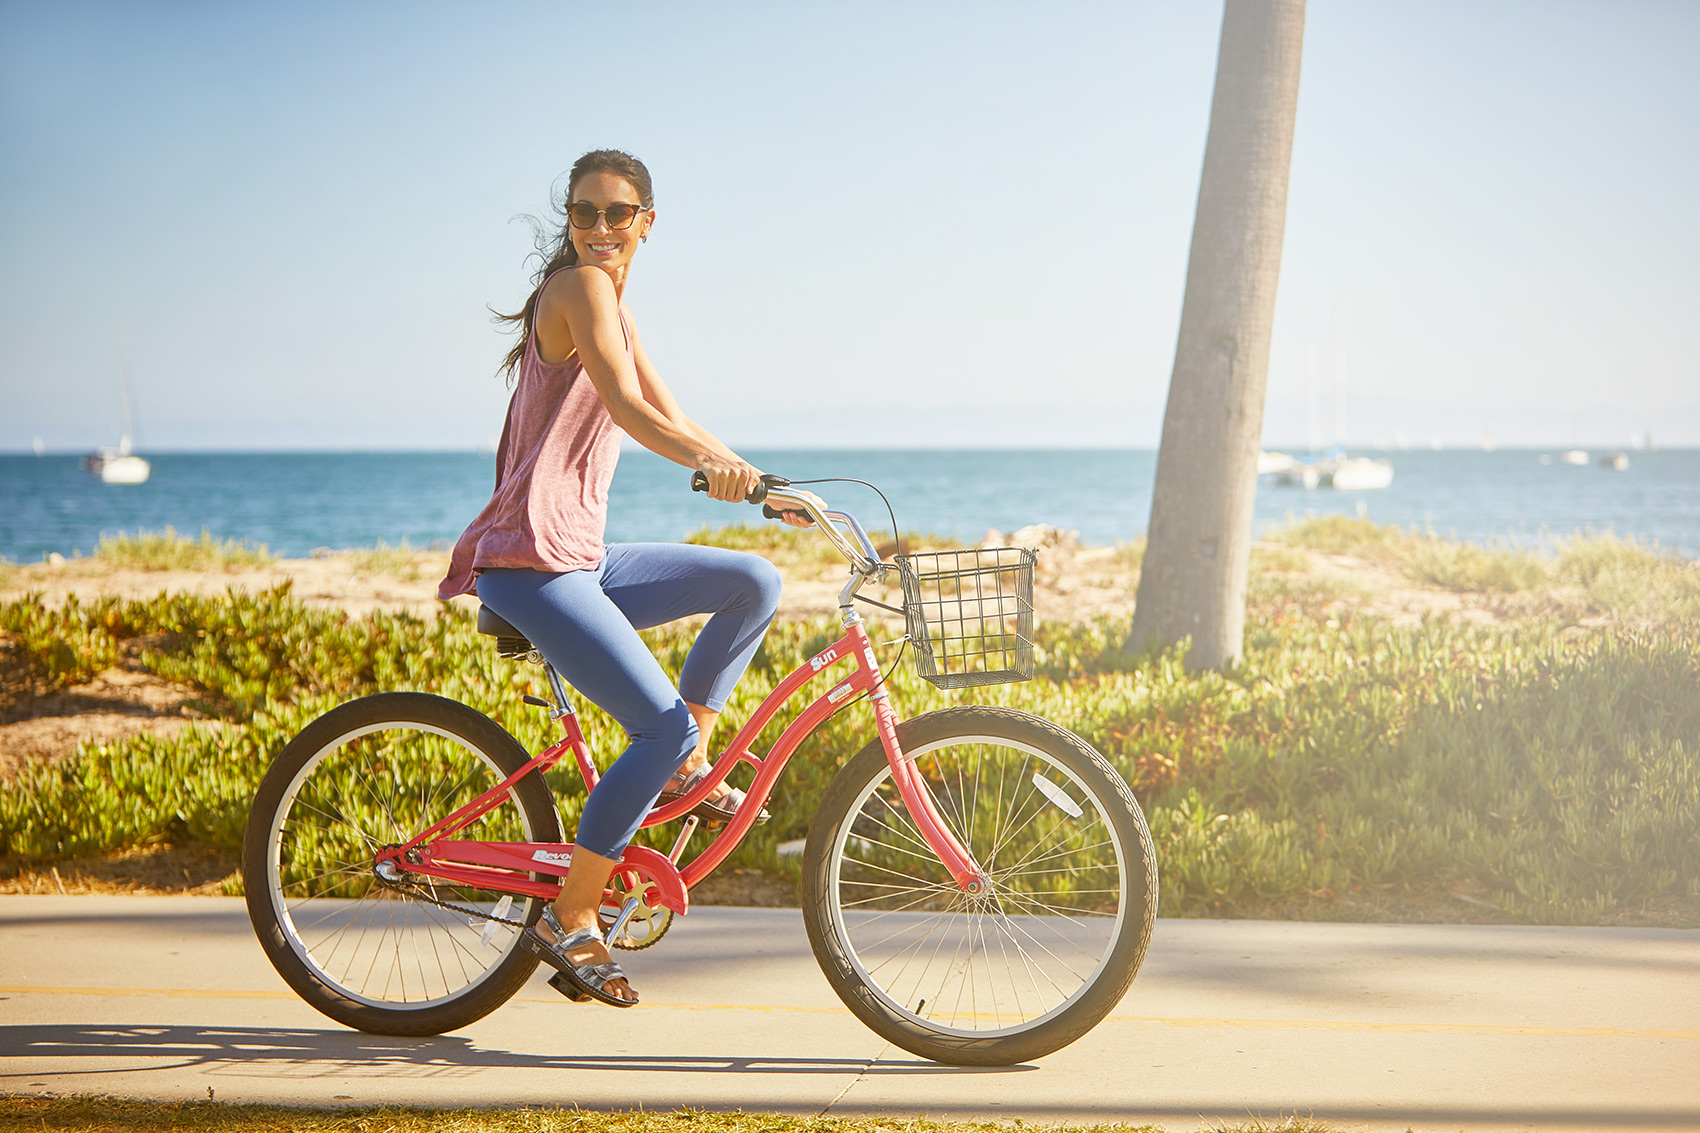 Bike ride near the Beach for Alegria Shoes Lifestyle Santa Barbara